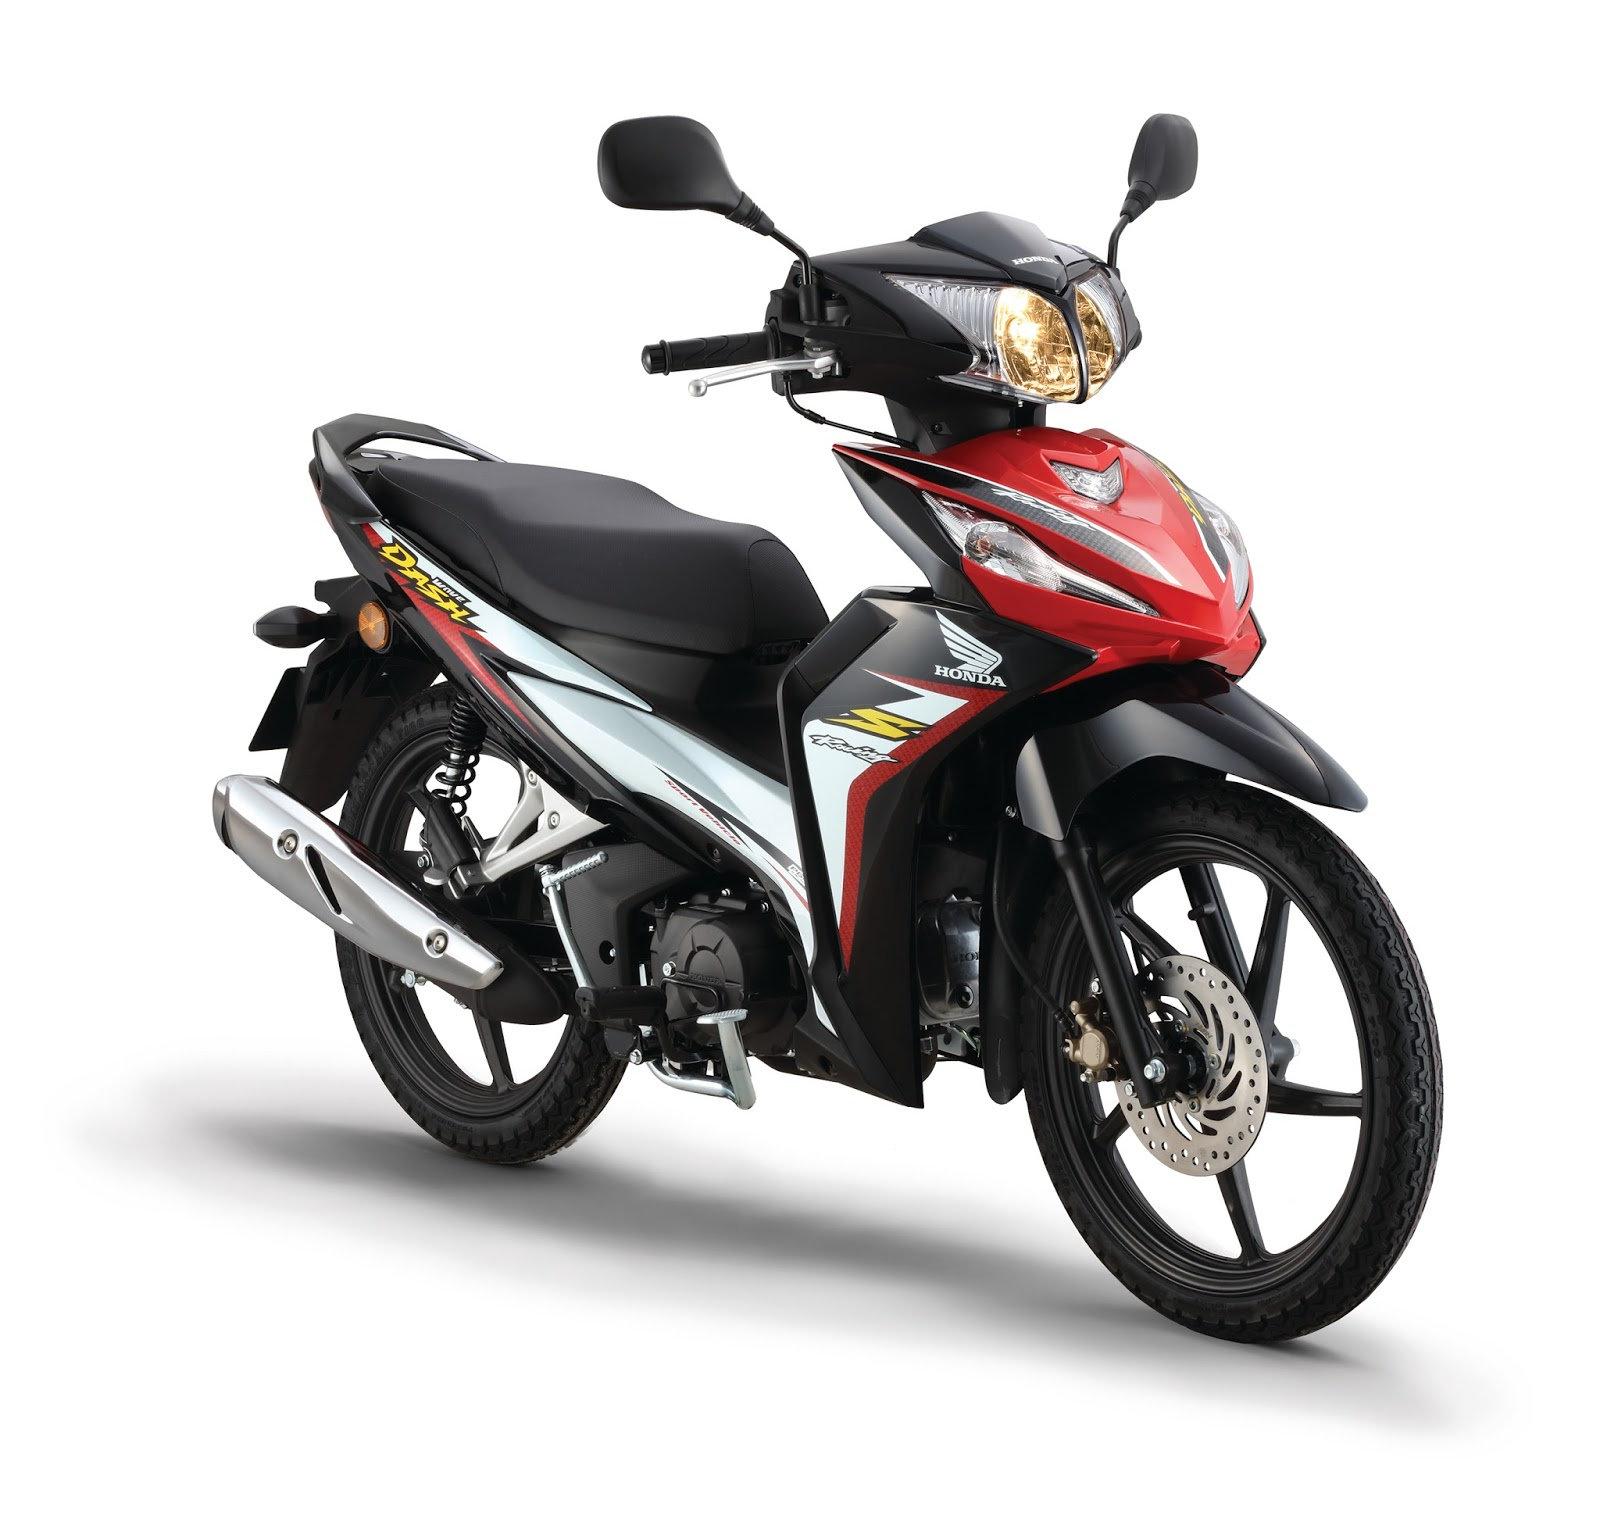 Honda Dash 125 – Daily Motivational Quotes